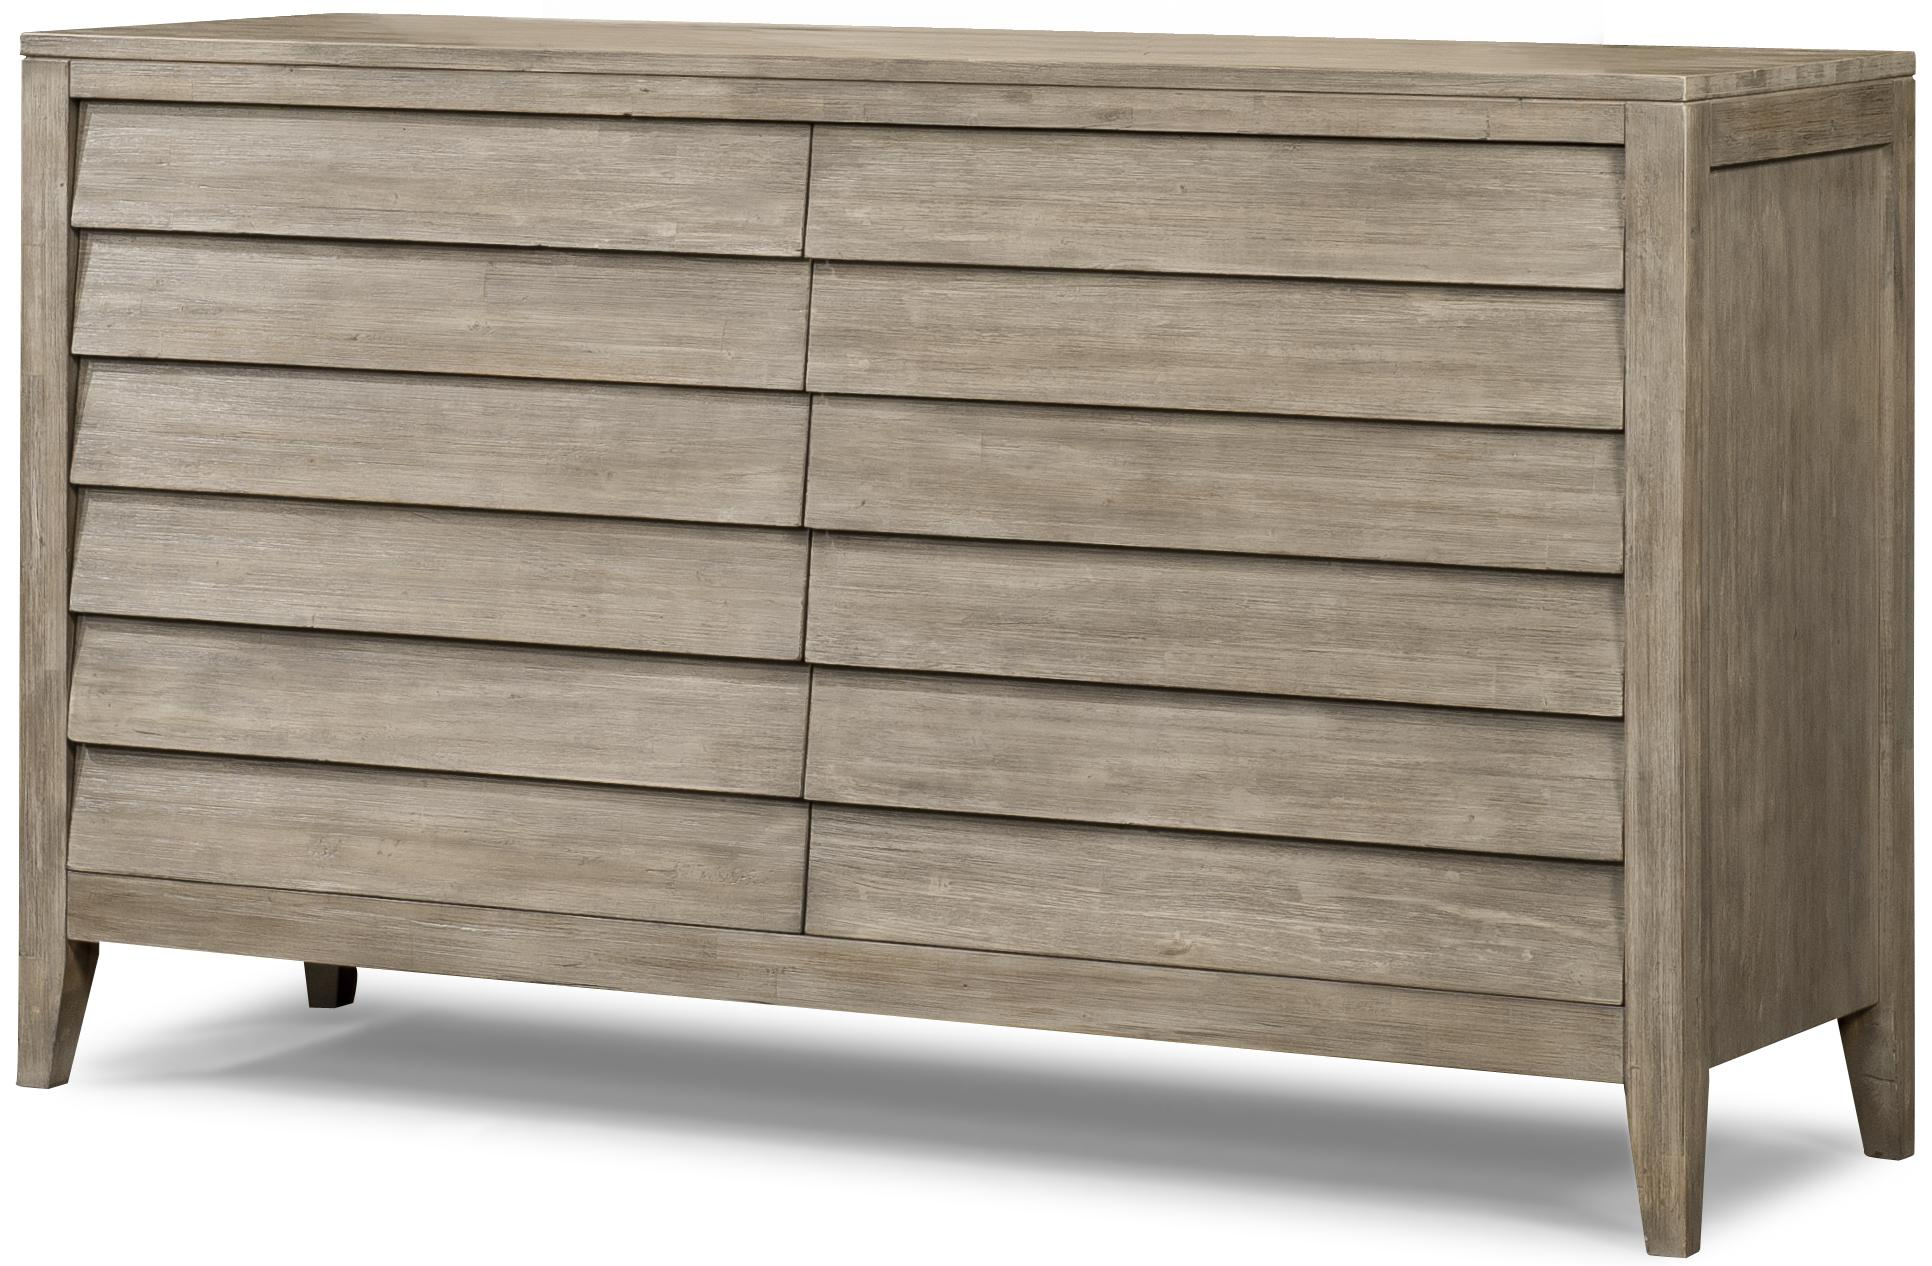 Cresent Fine Furniture Corliss Landing Dresser - Item Number: 5601